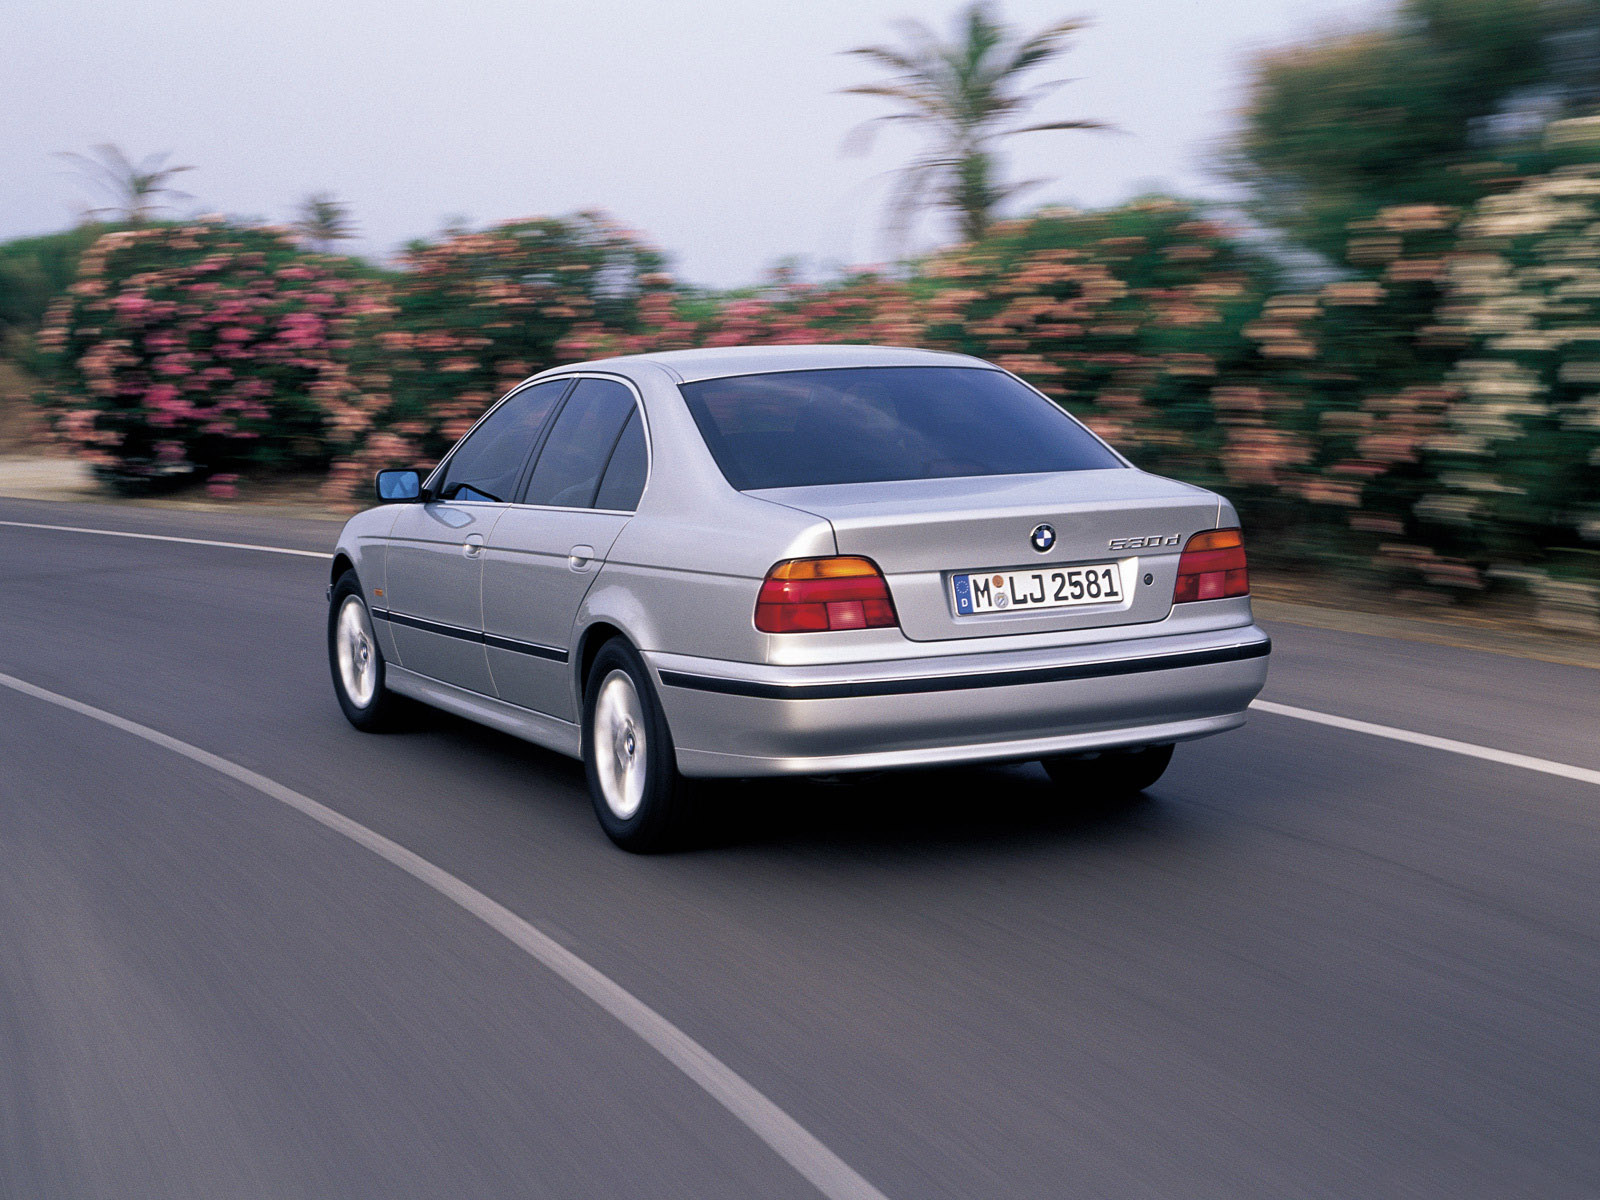 Bmw 5 Series Sedan E39 1995 2003 Photo 20 Car In Pictures Car Photo Gallery